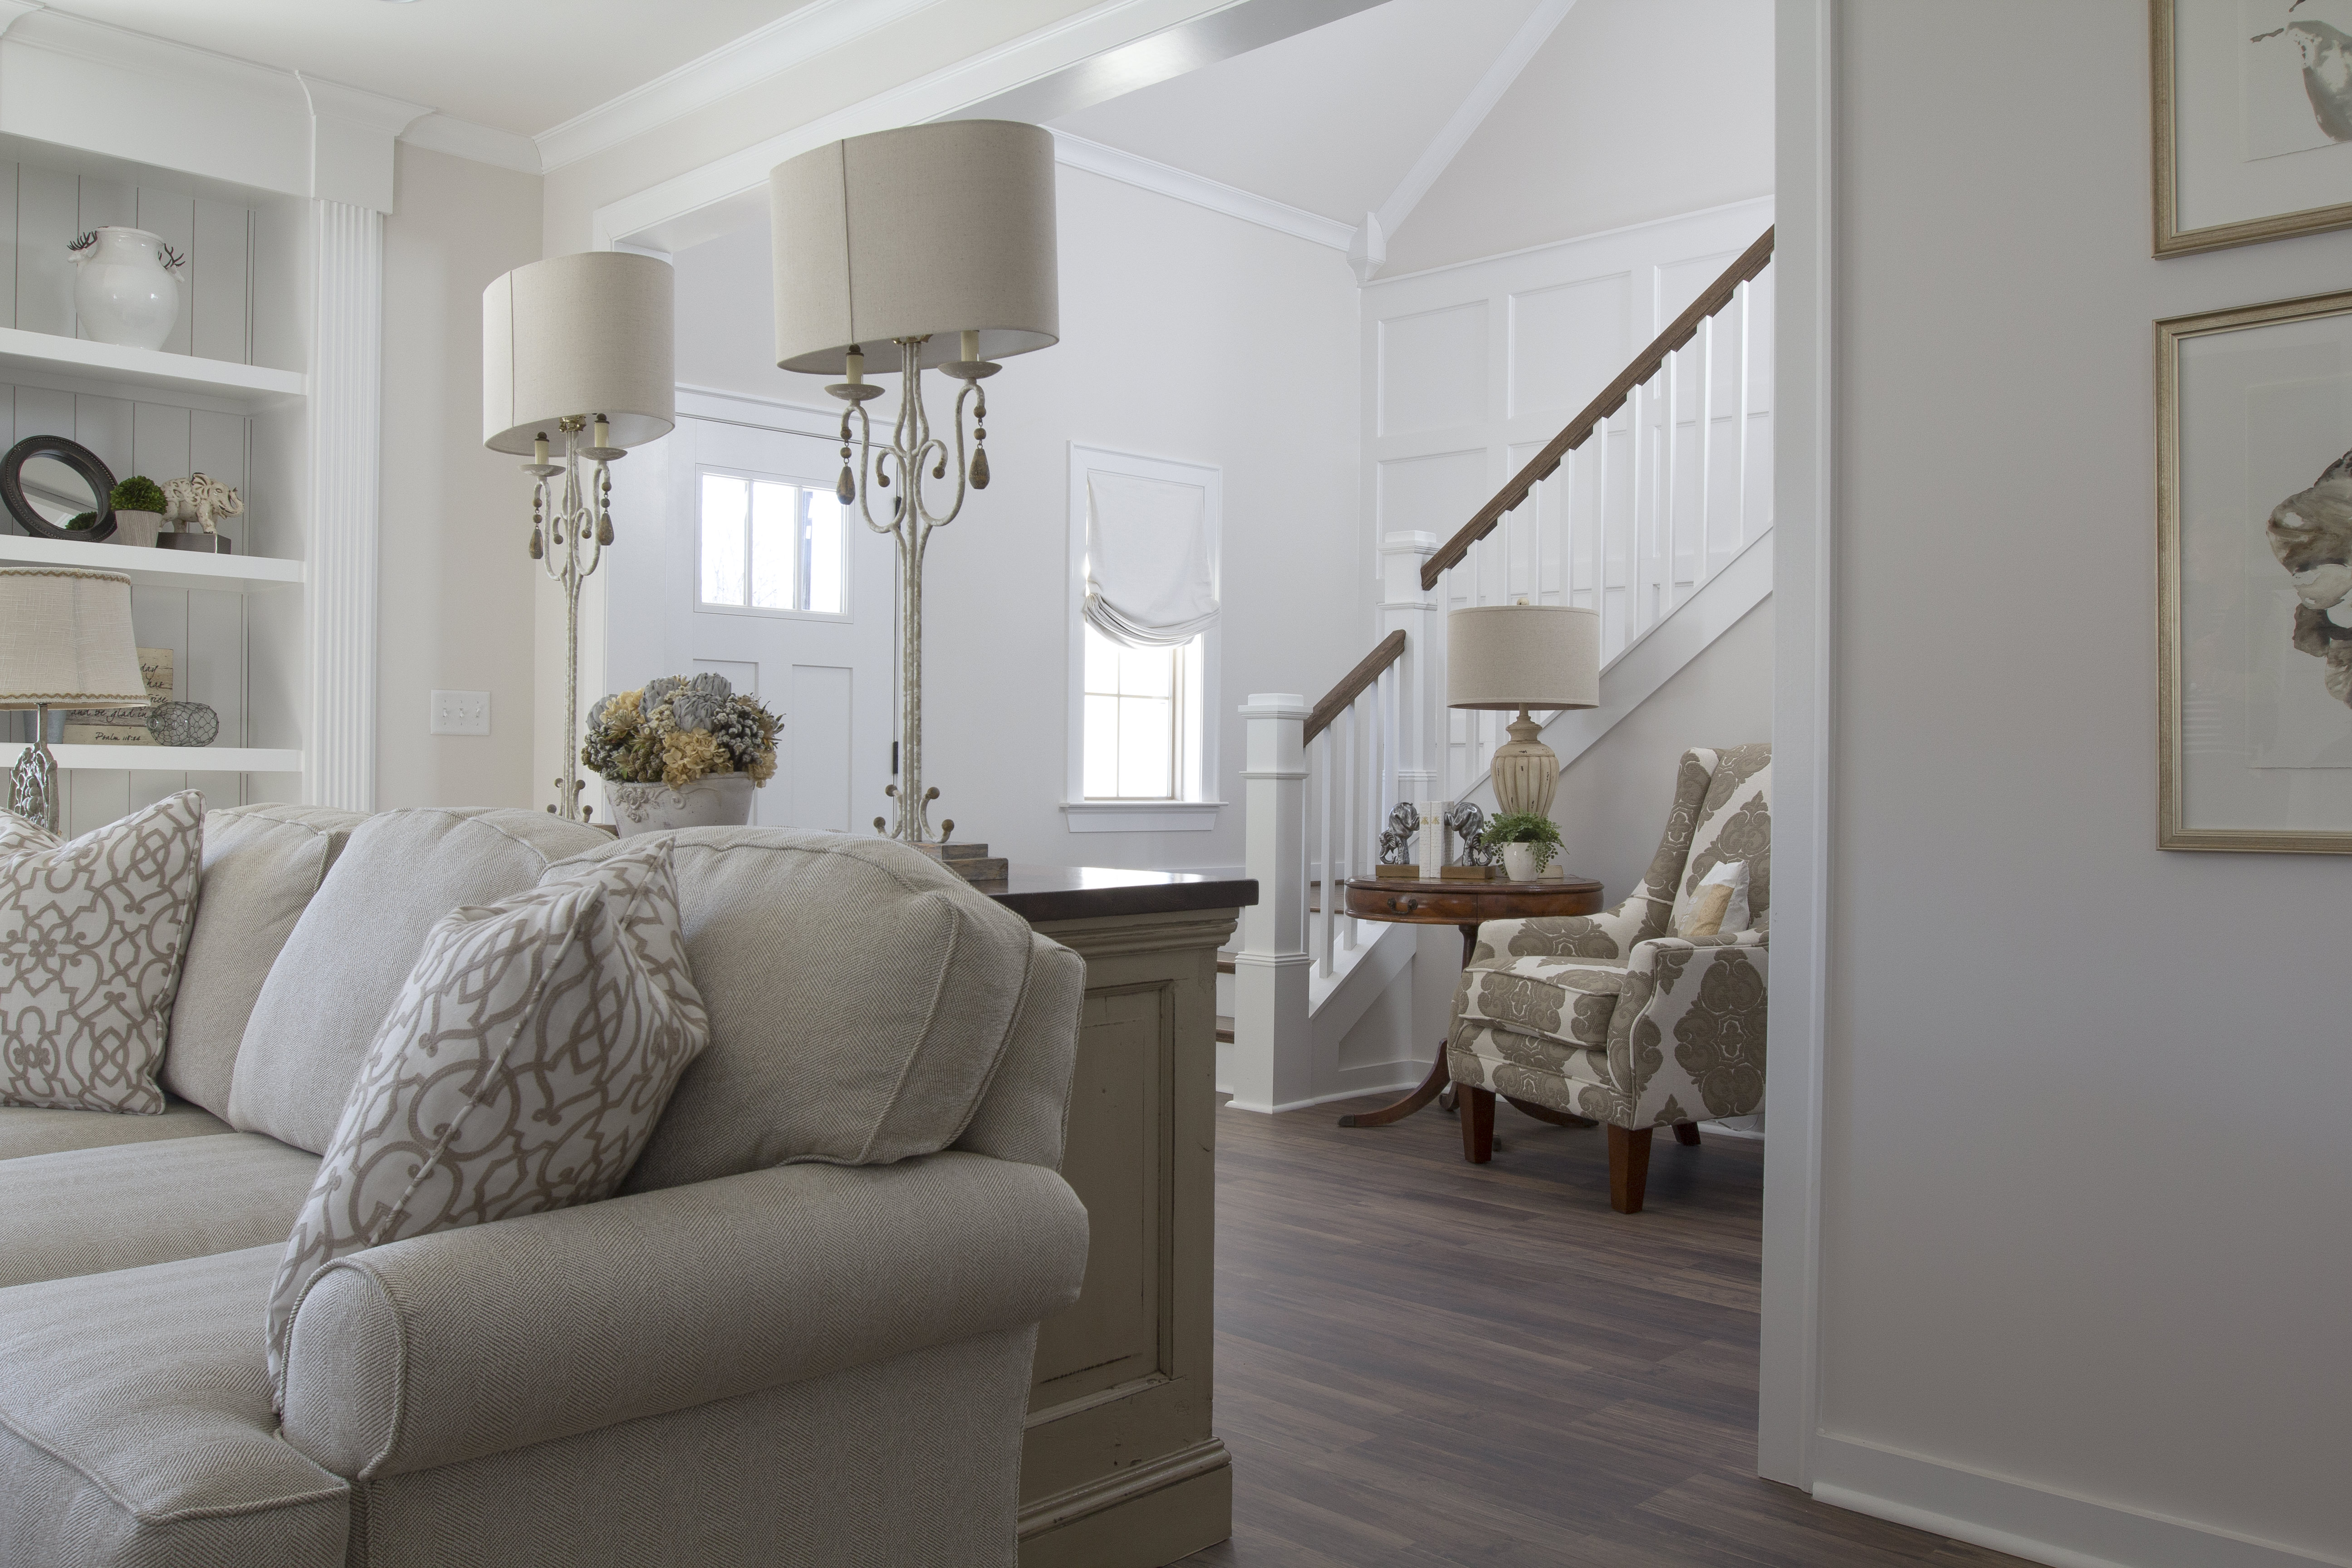 Improving Your Home for the New Year